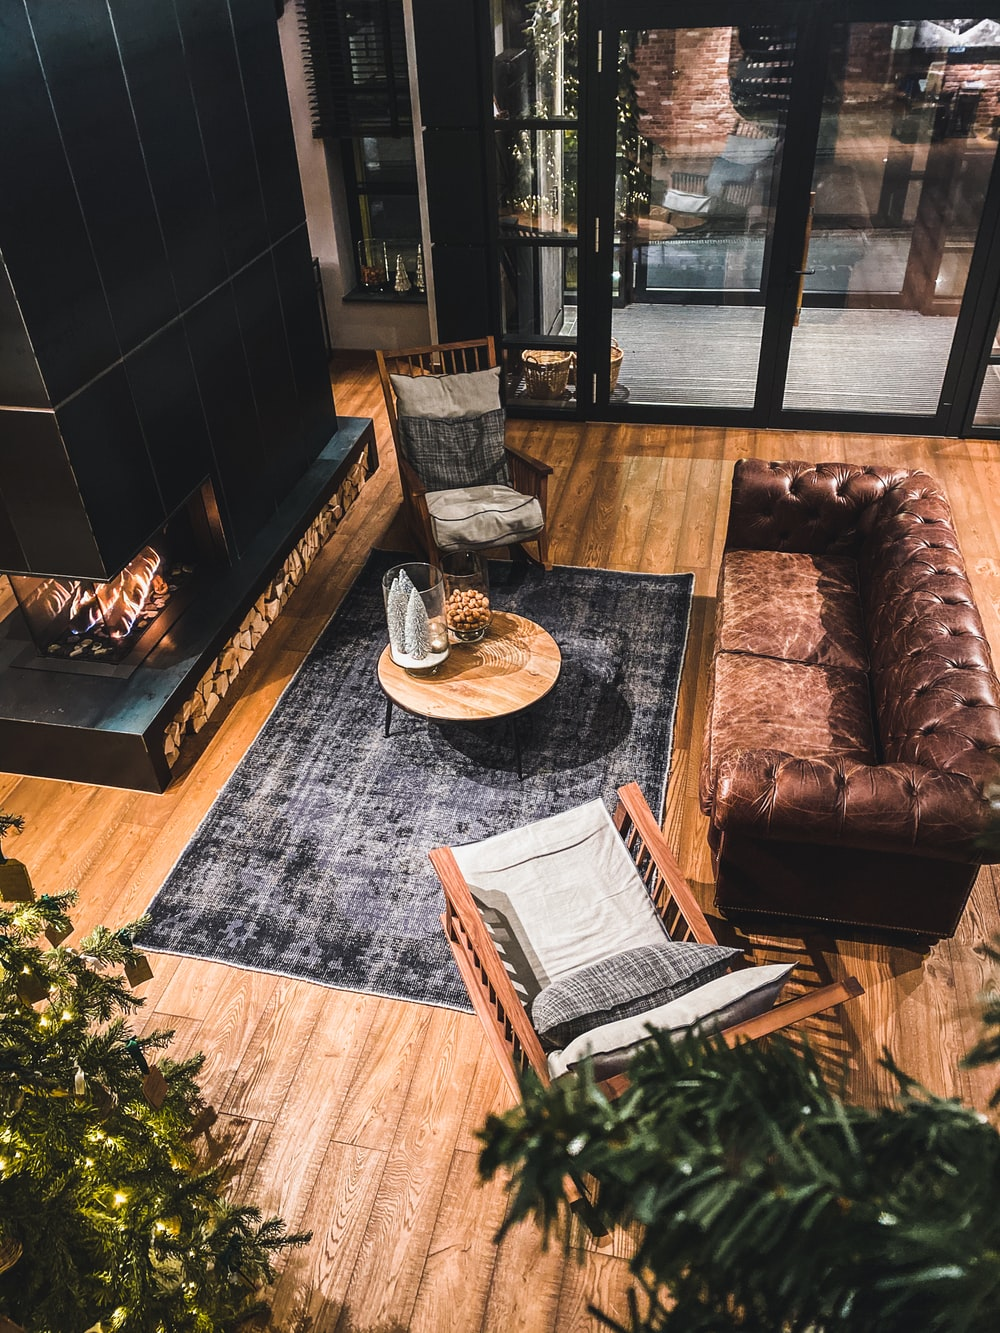 brown leather couch beside brown wooden table